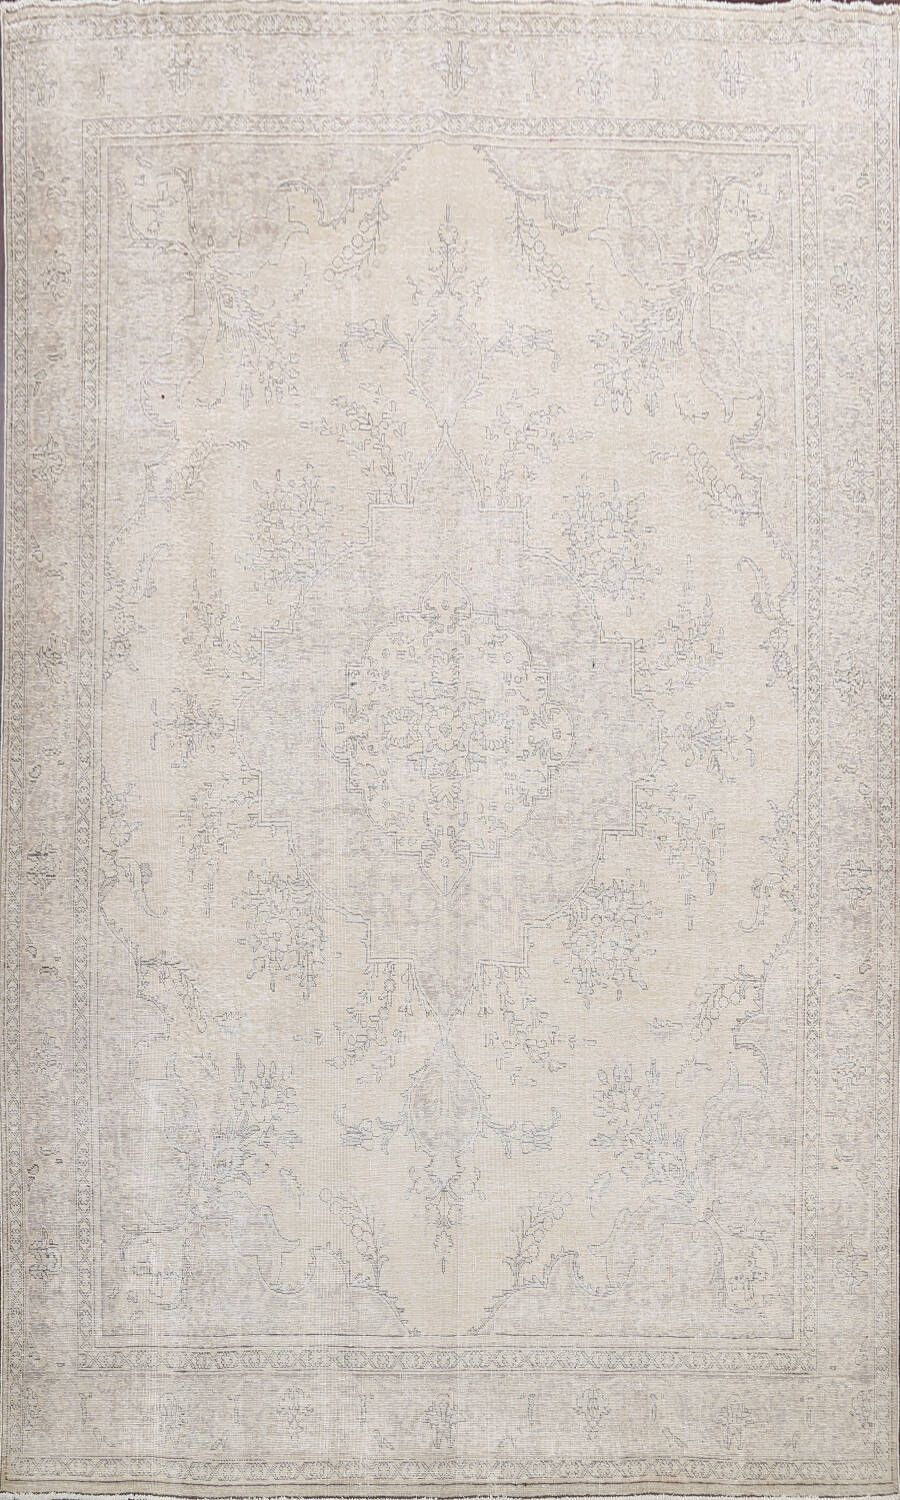 Muted Distressed Floral Tabriz Persian Area Rug 10x13 image 1